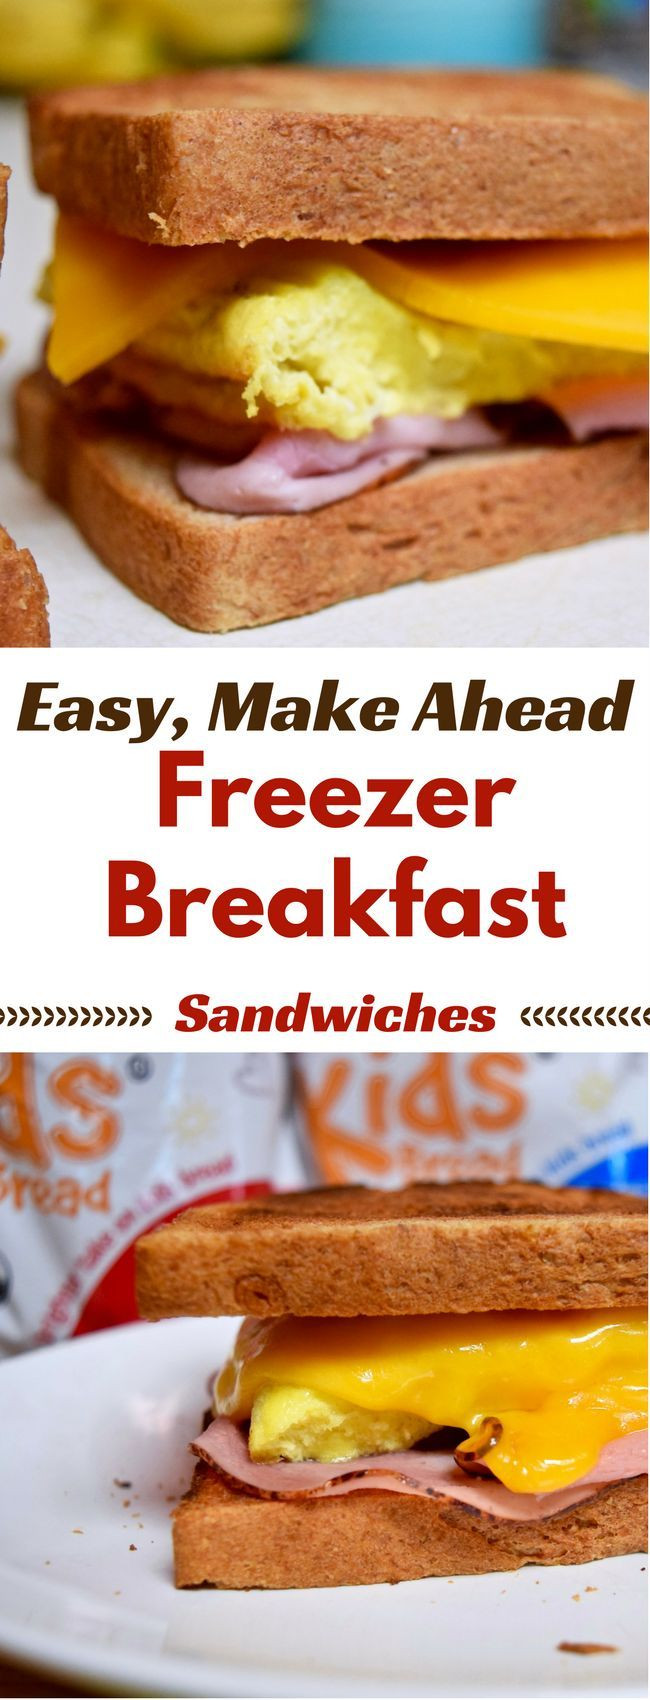 Make Ahead Breakfast Recipes To Freeze  Easy Make Ahead Freezer Breakfast Sandwiches